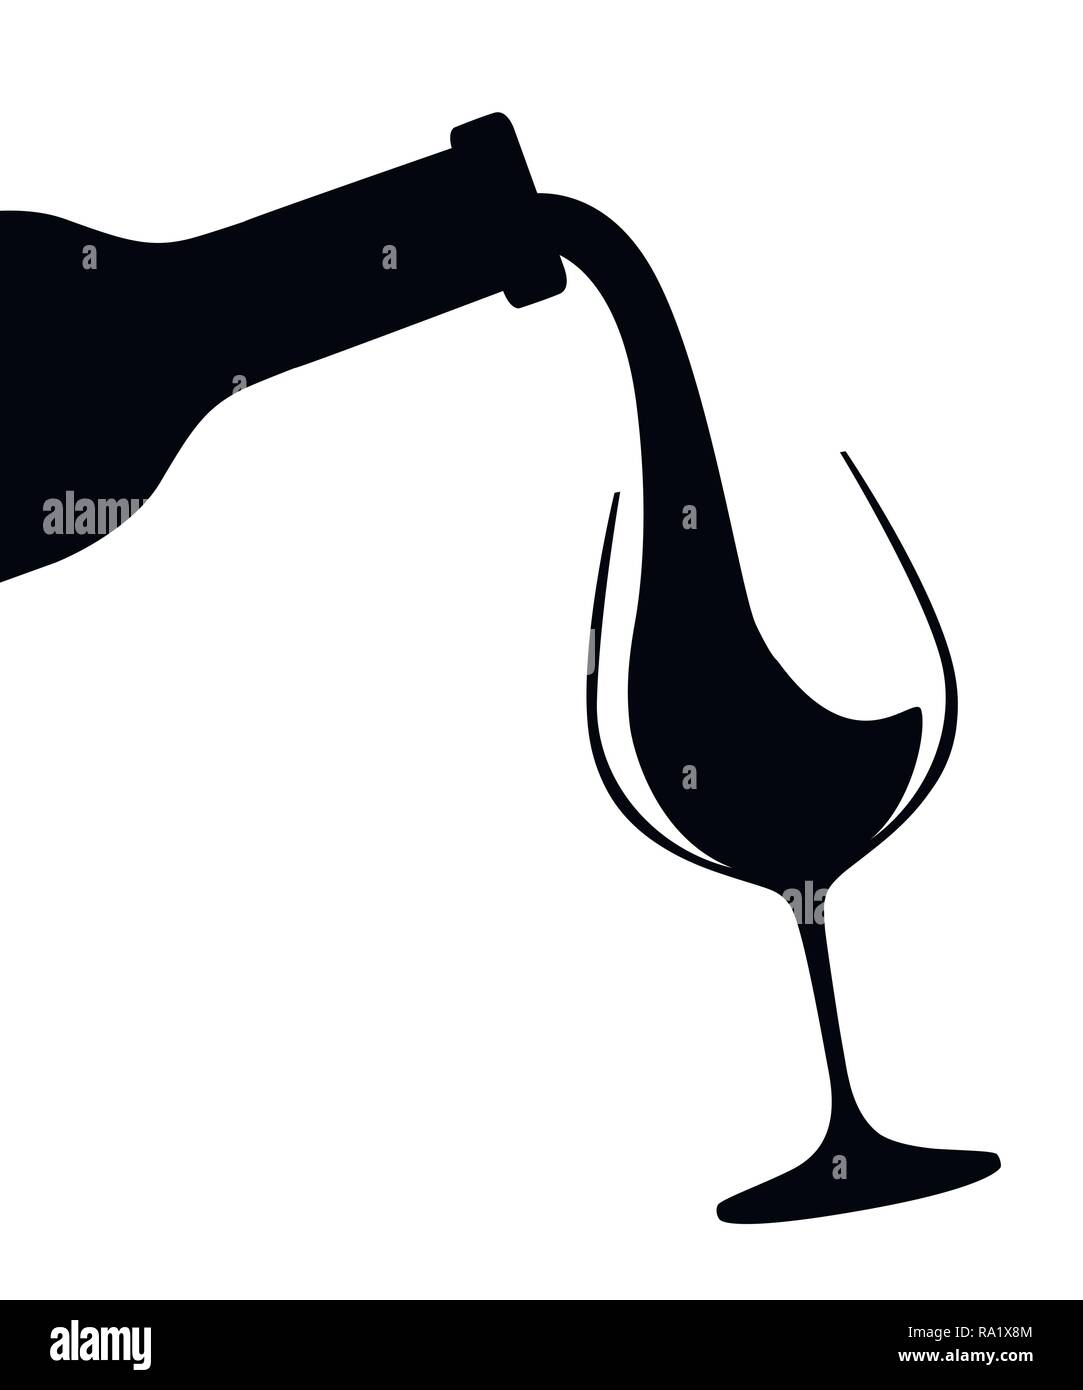 Black Silhouette Abstract Logo Or Illustration Red Wine Pouring From Bottle To Glass Flat Vector Illustration Isolated On White Background Stock Vector Image Art Alamy